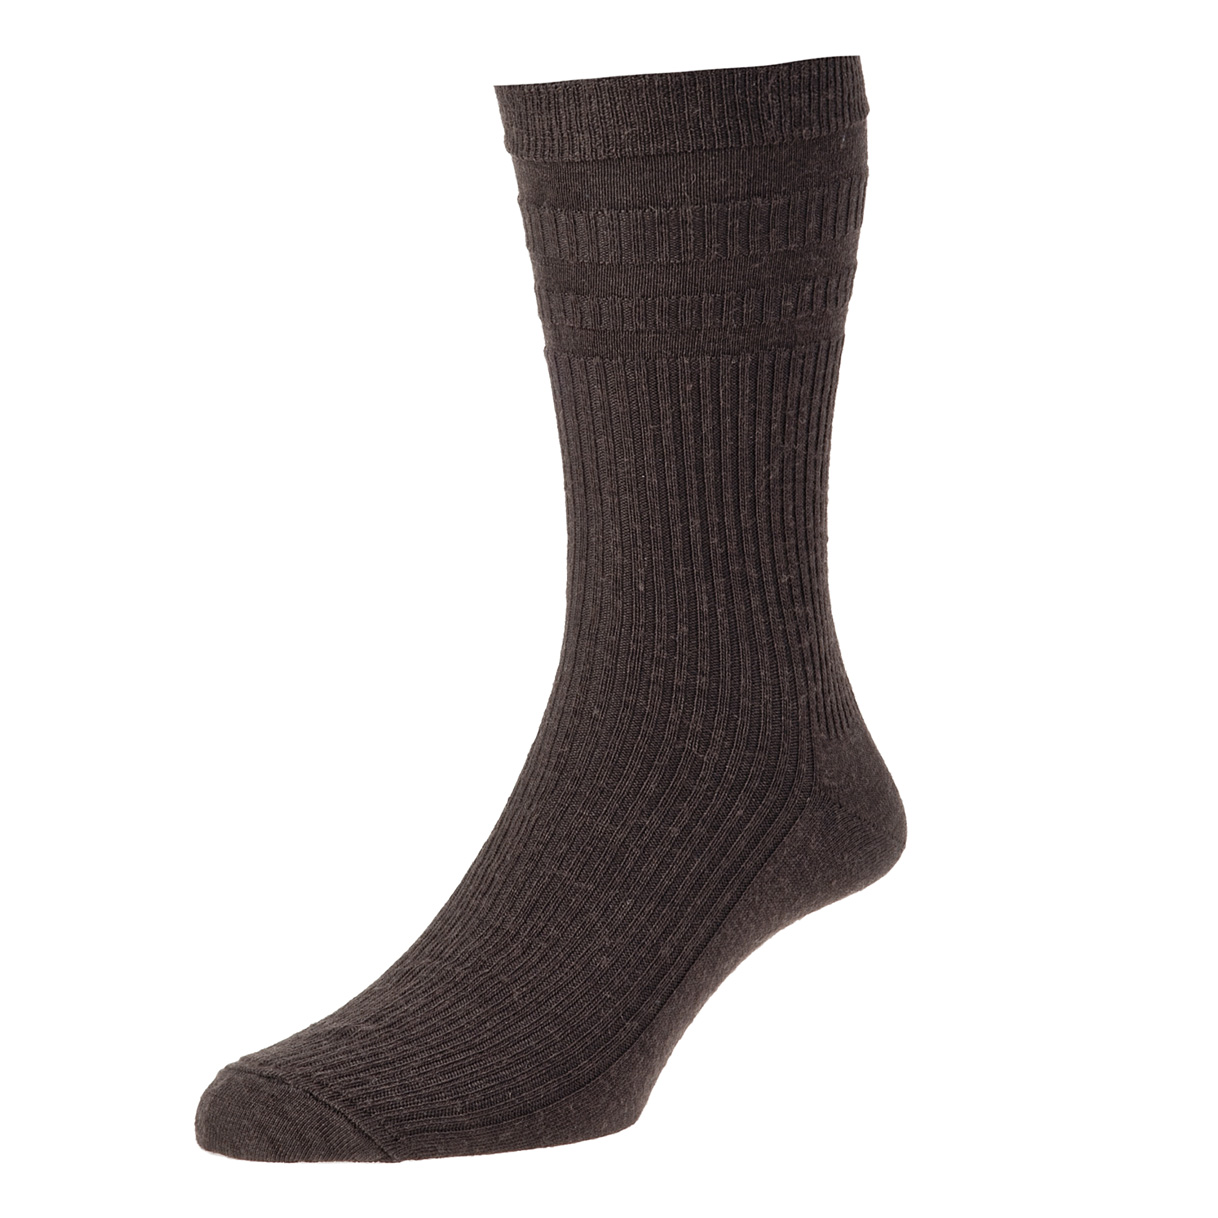 HJ Hall Softop Mens Wool Socks size 6-11 Dark Brown  HJ90